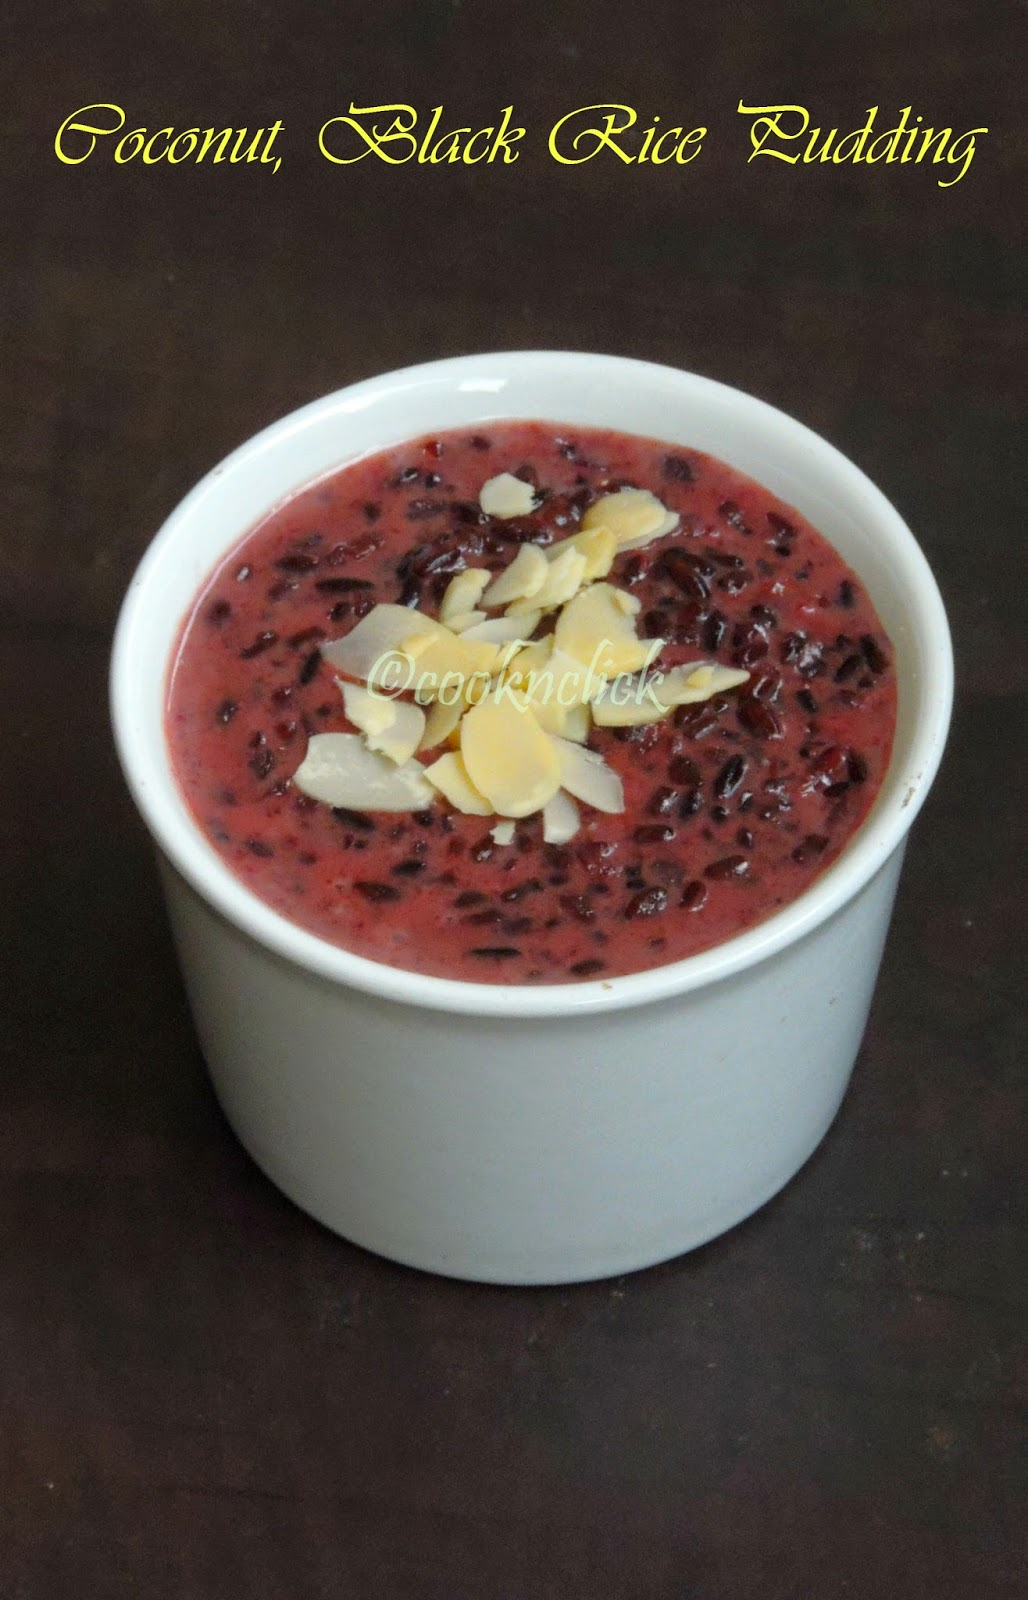 Vegan Coconut milk and black rice pudding